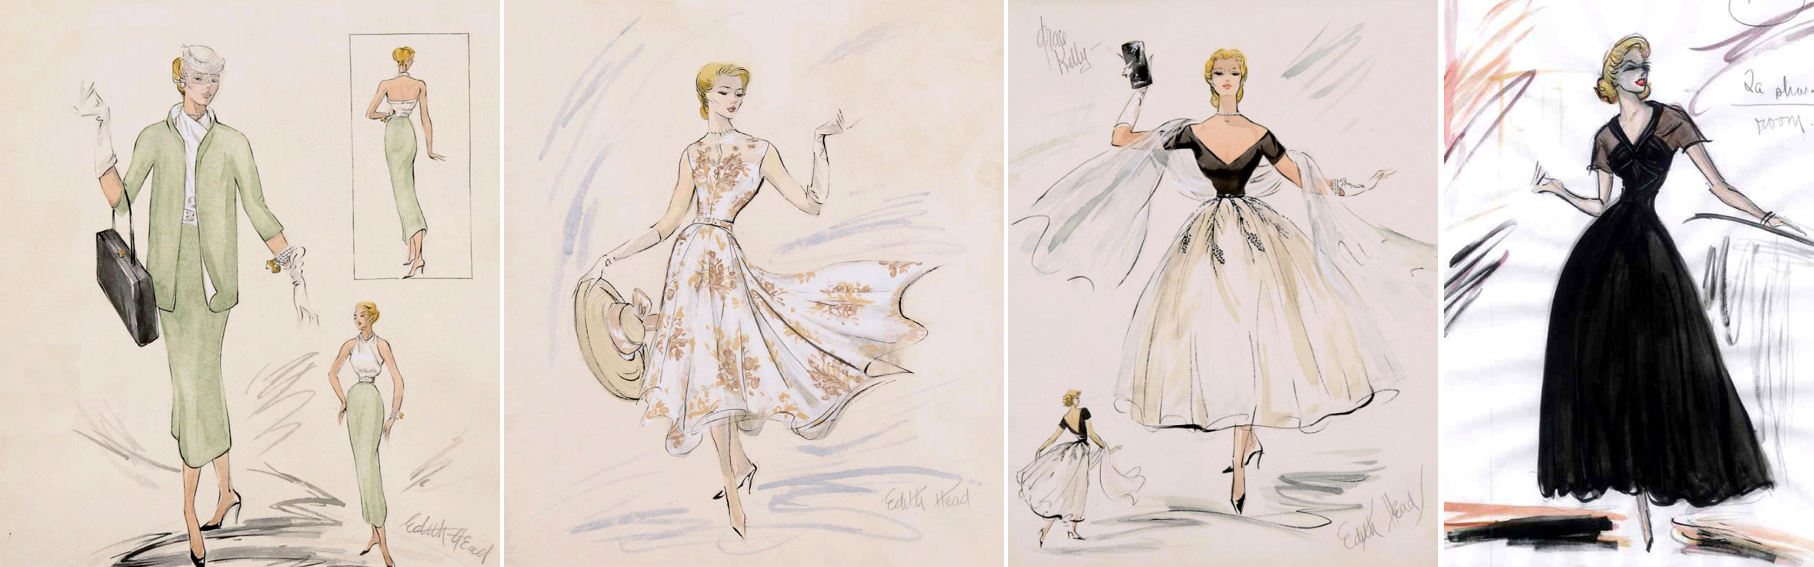 Edith-Head-Grace-Kelly